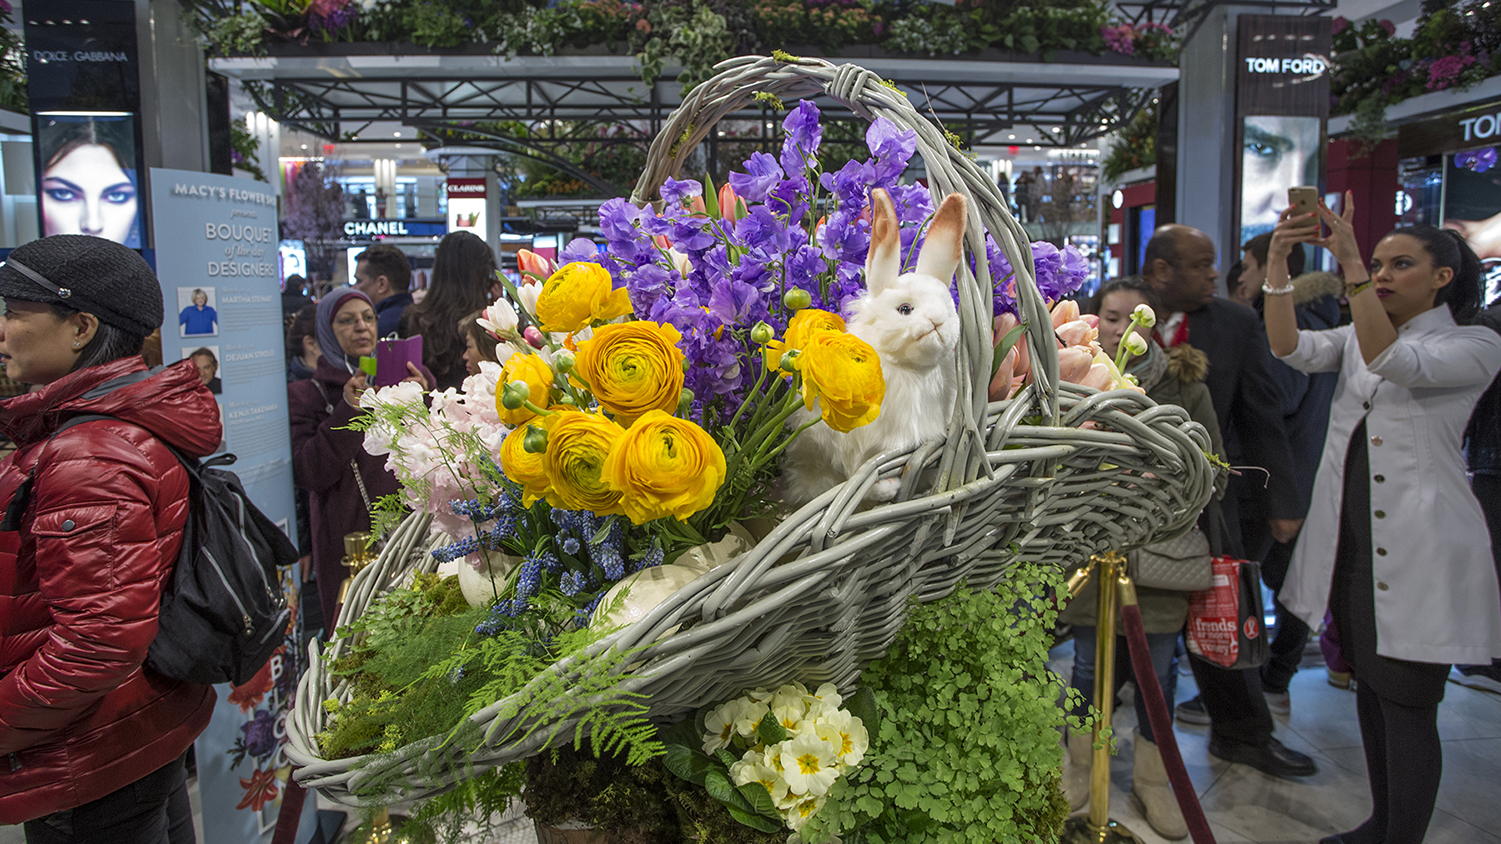 Feast your eyes on these gorgeous photos of Macy's Flower Show 2015